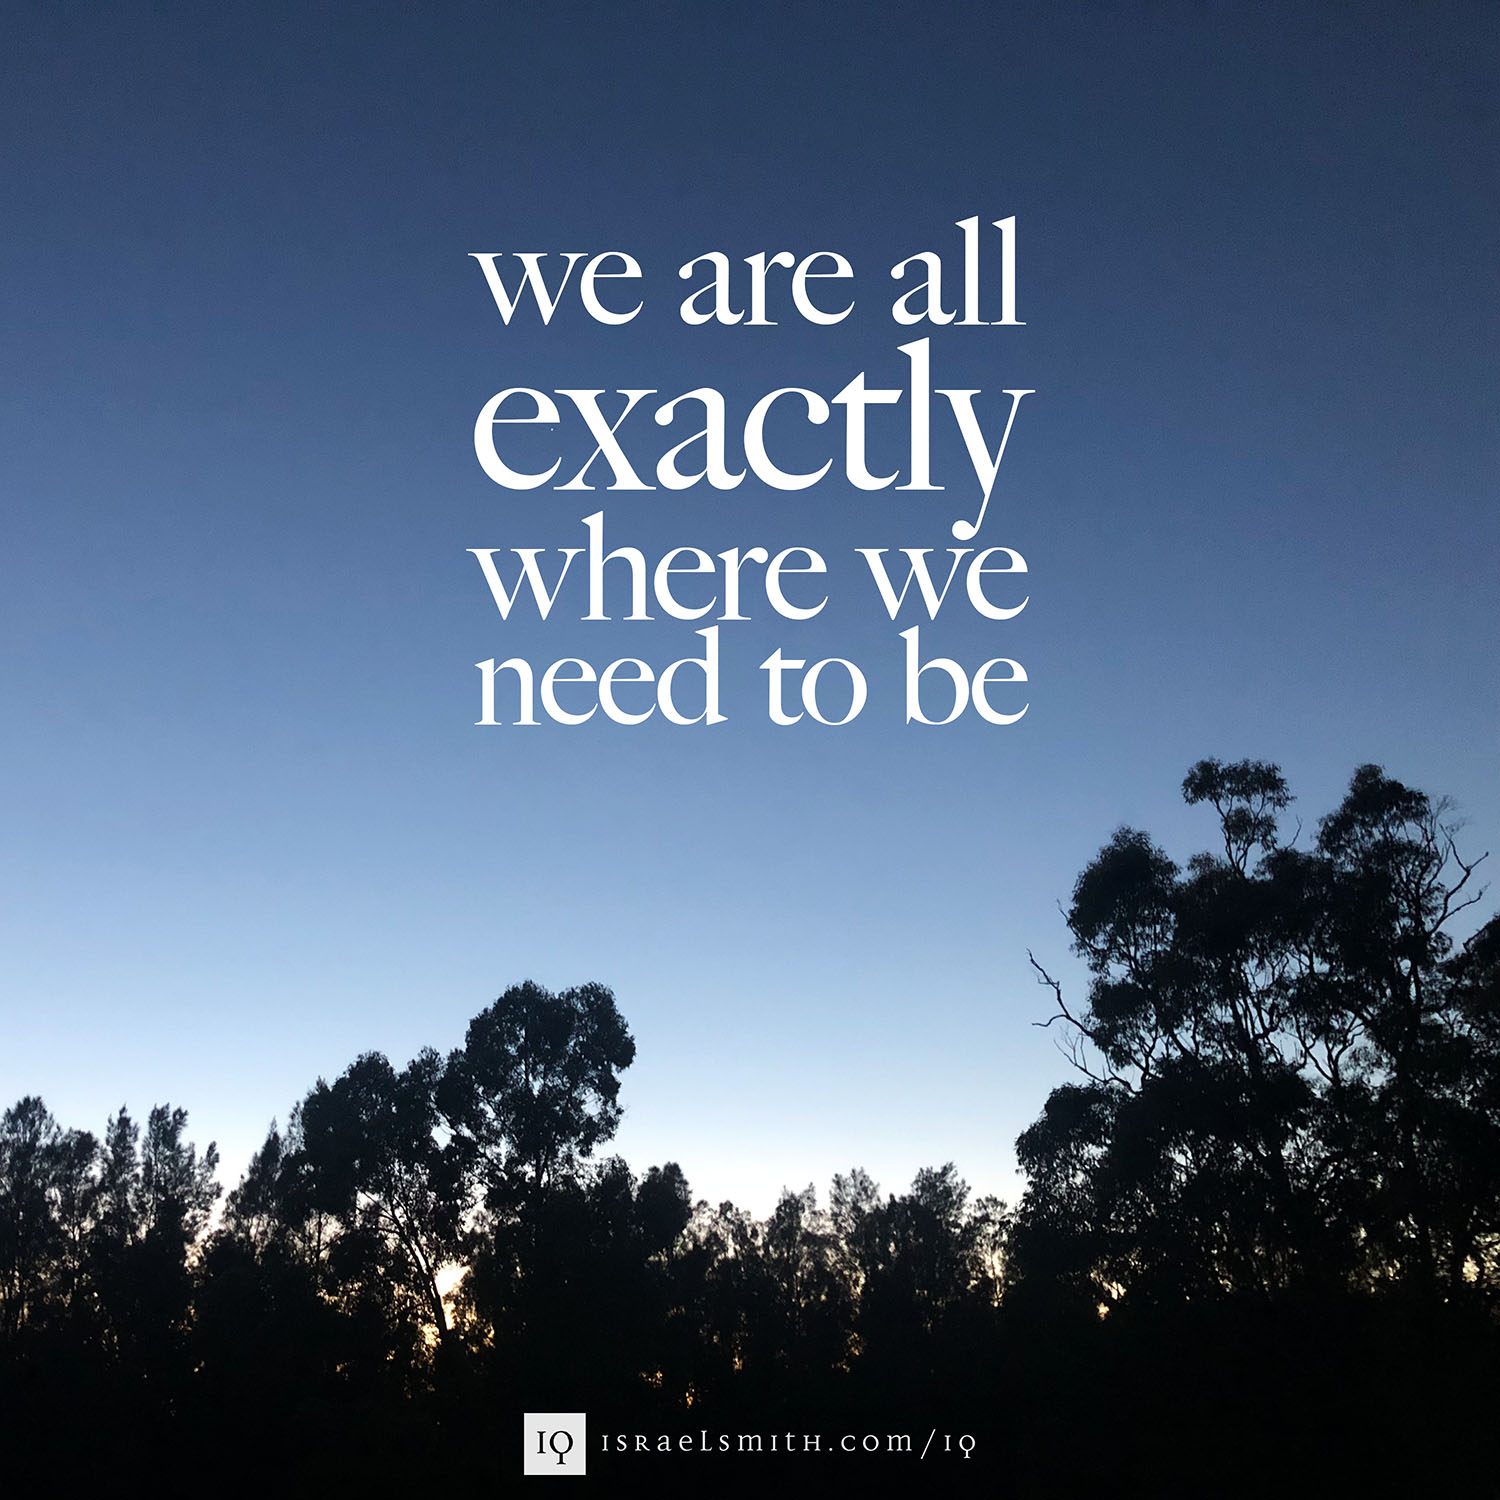 We are all exactly where we need to be.